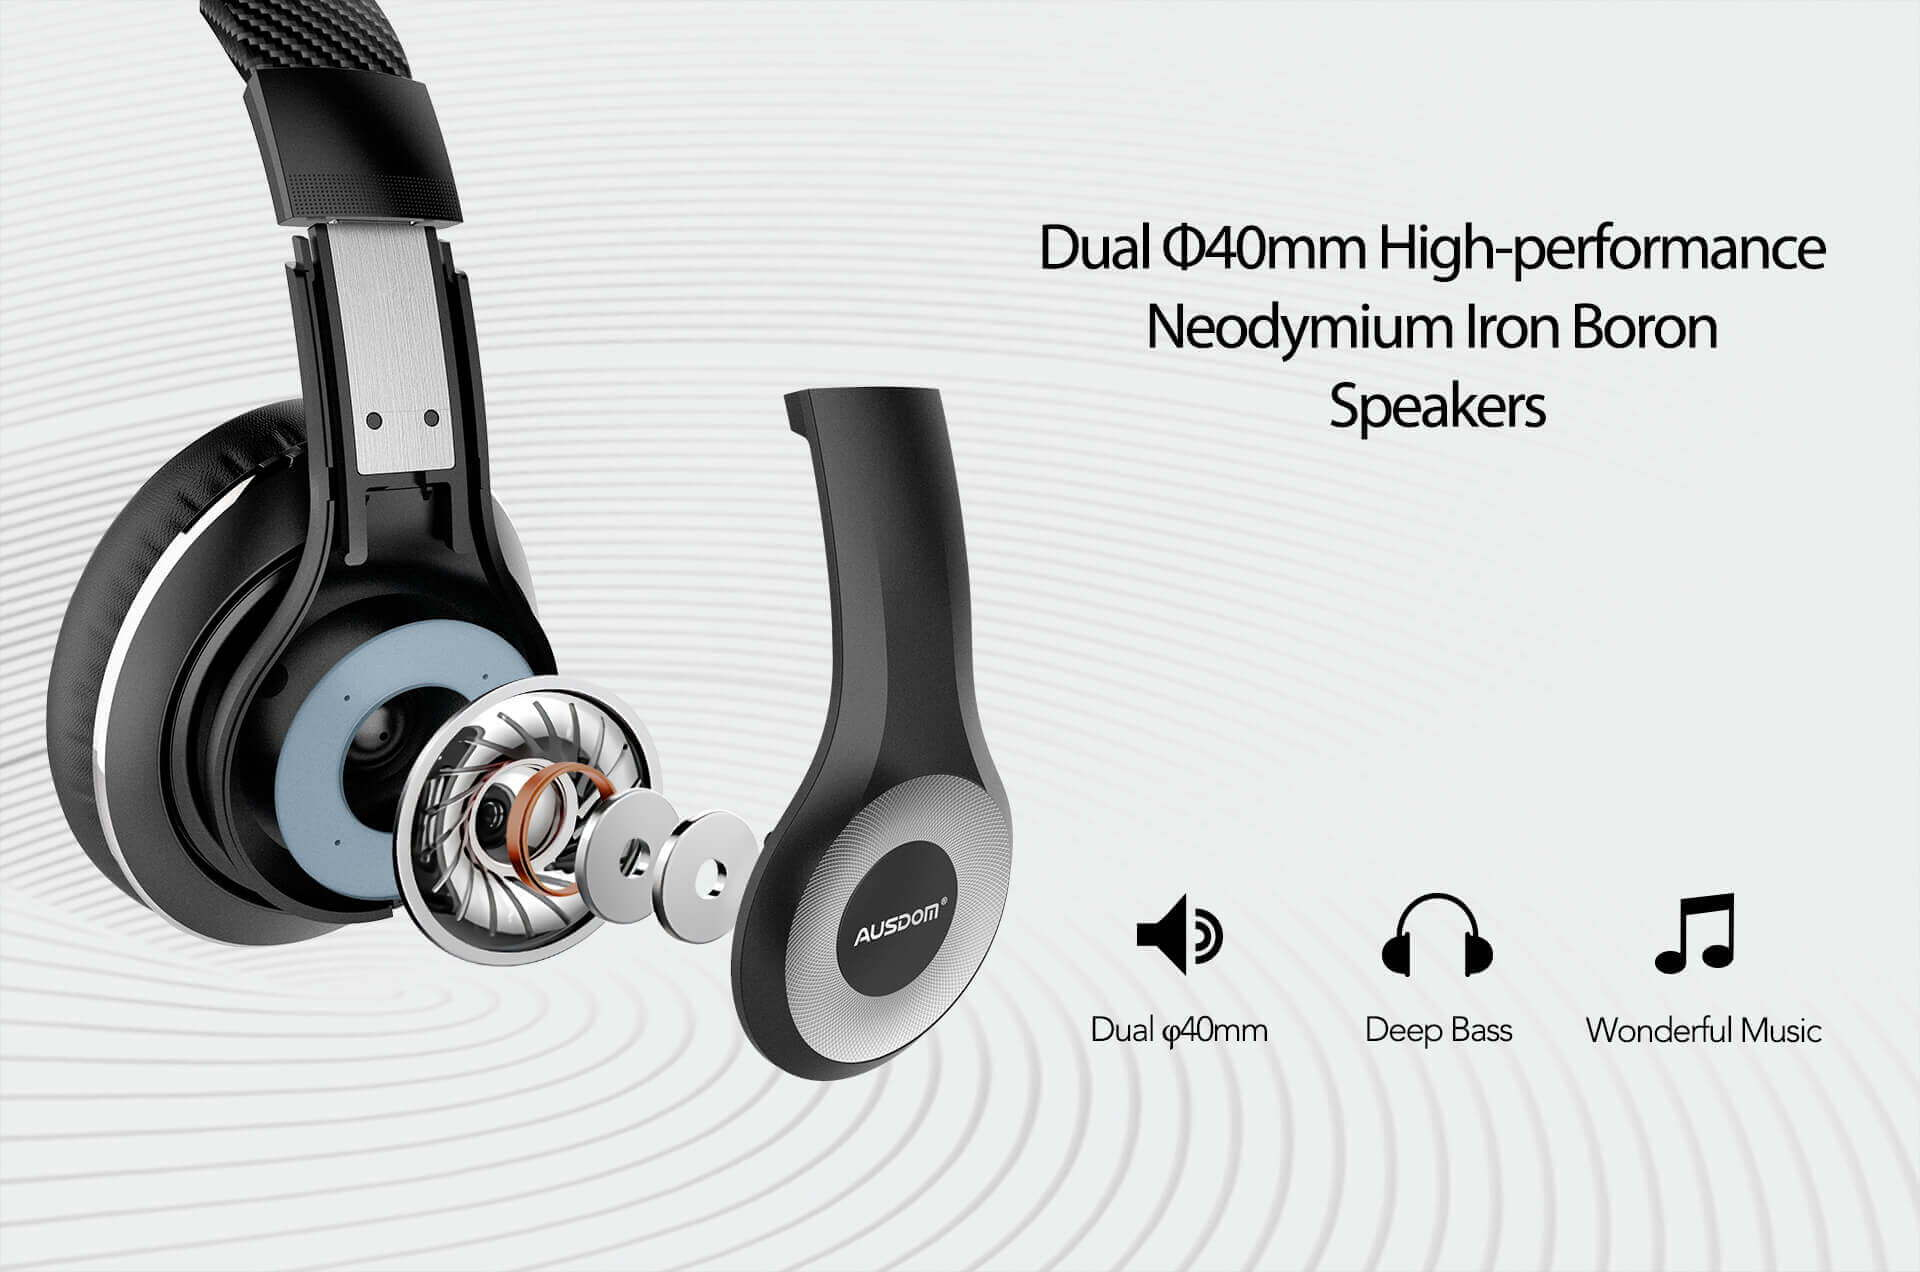 Superior Sound Quality, Dual 40mm Drivers